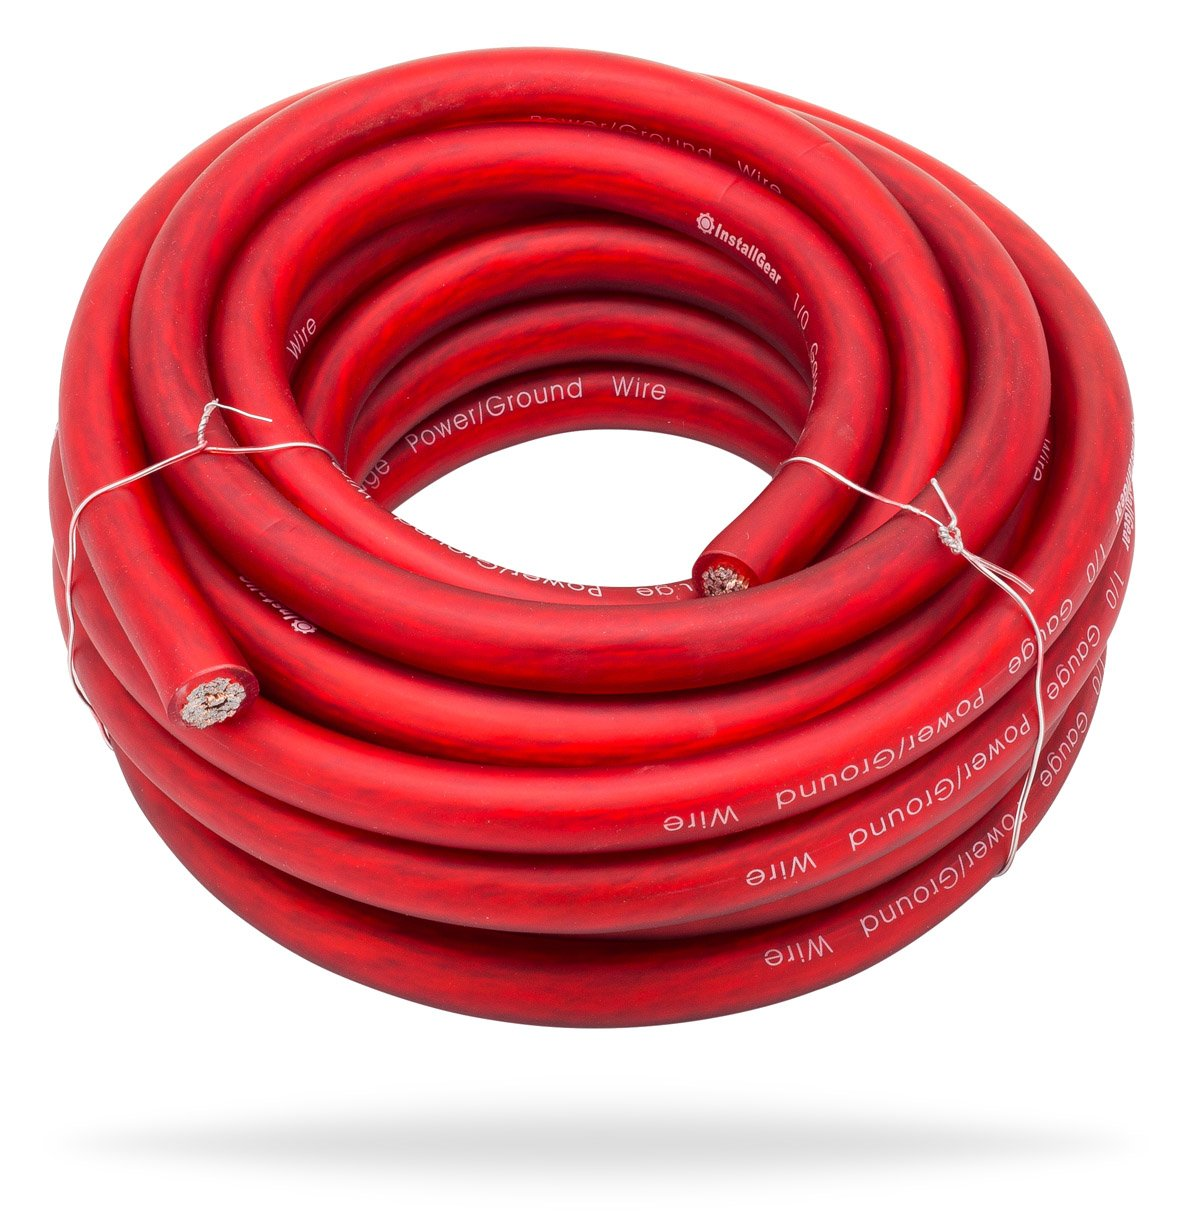 InstallGear 1/0 Gauge Red 25ft Power/Ground Wire True Spec and Soft Touch Cable by InstallGear